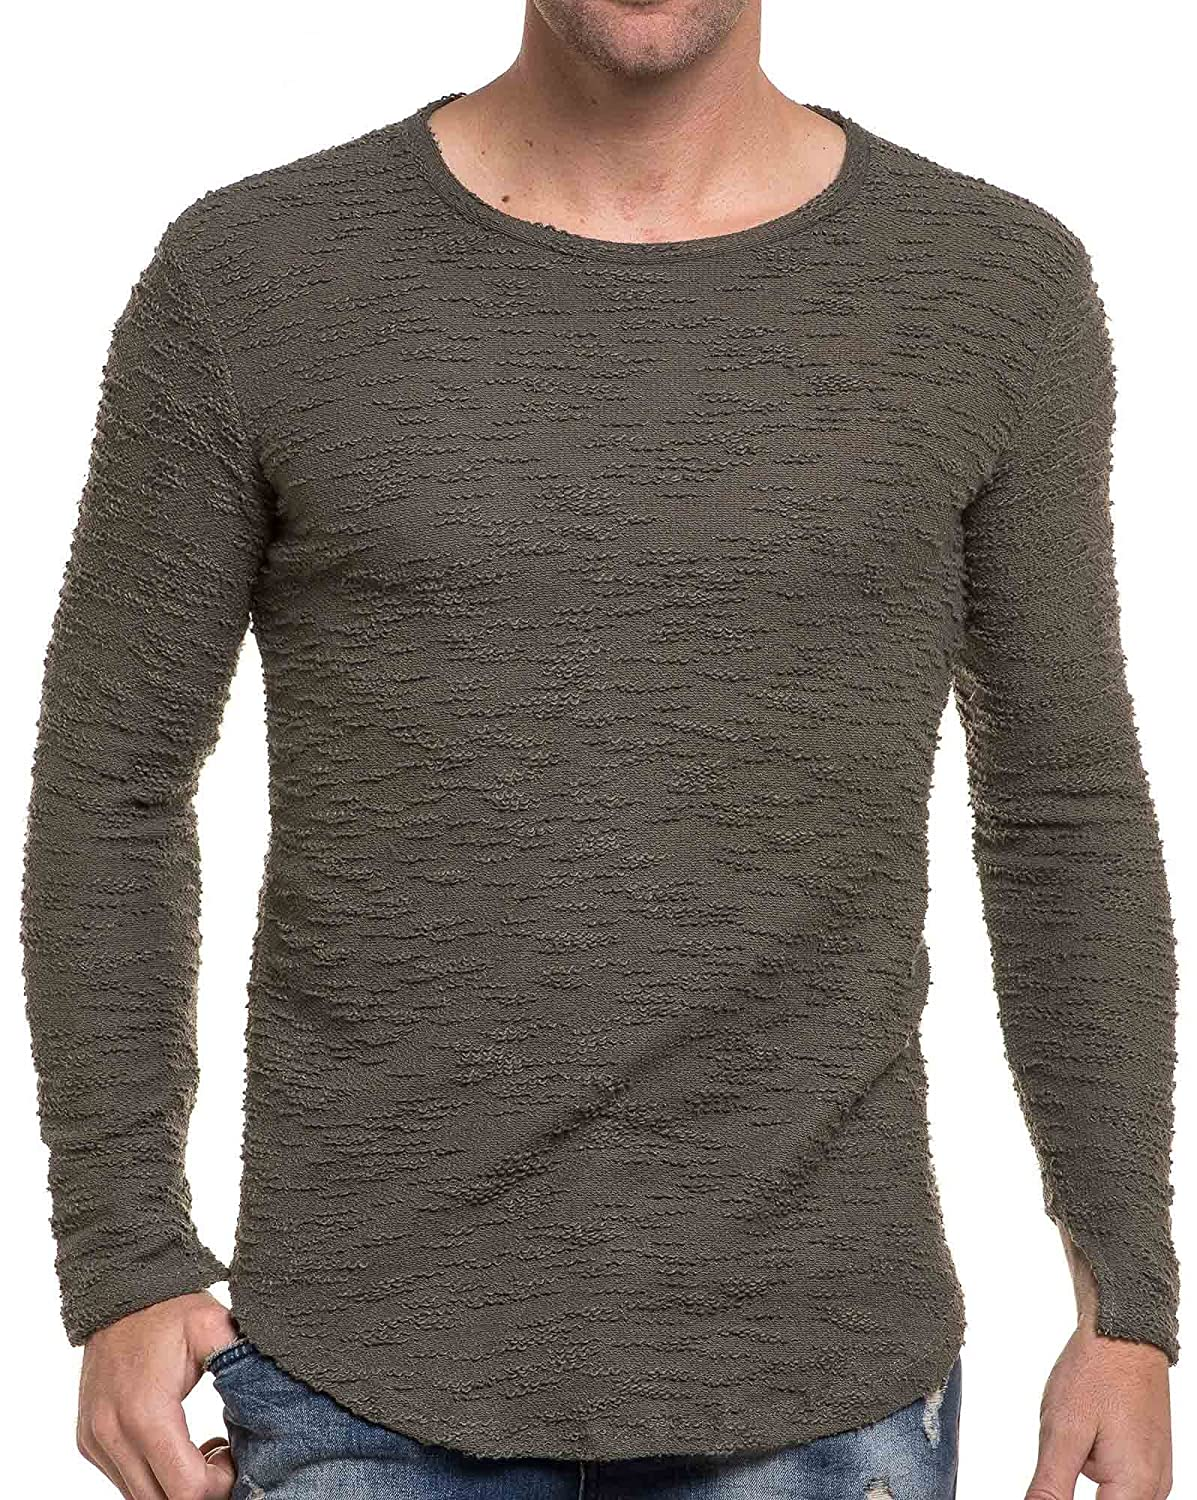 BLZ jeans - stylish men sweater khaki green round neck mesh terrain